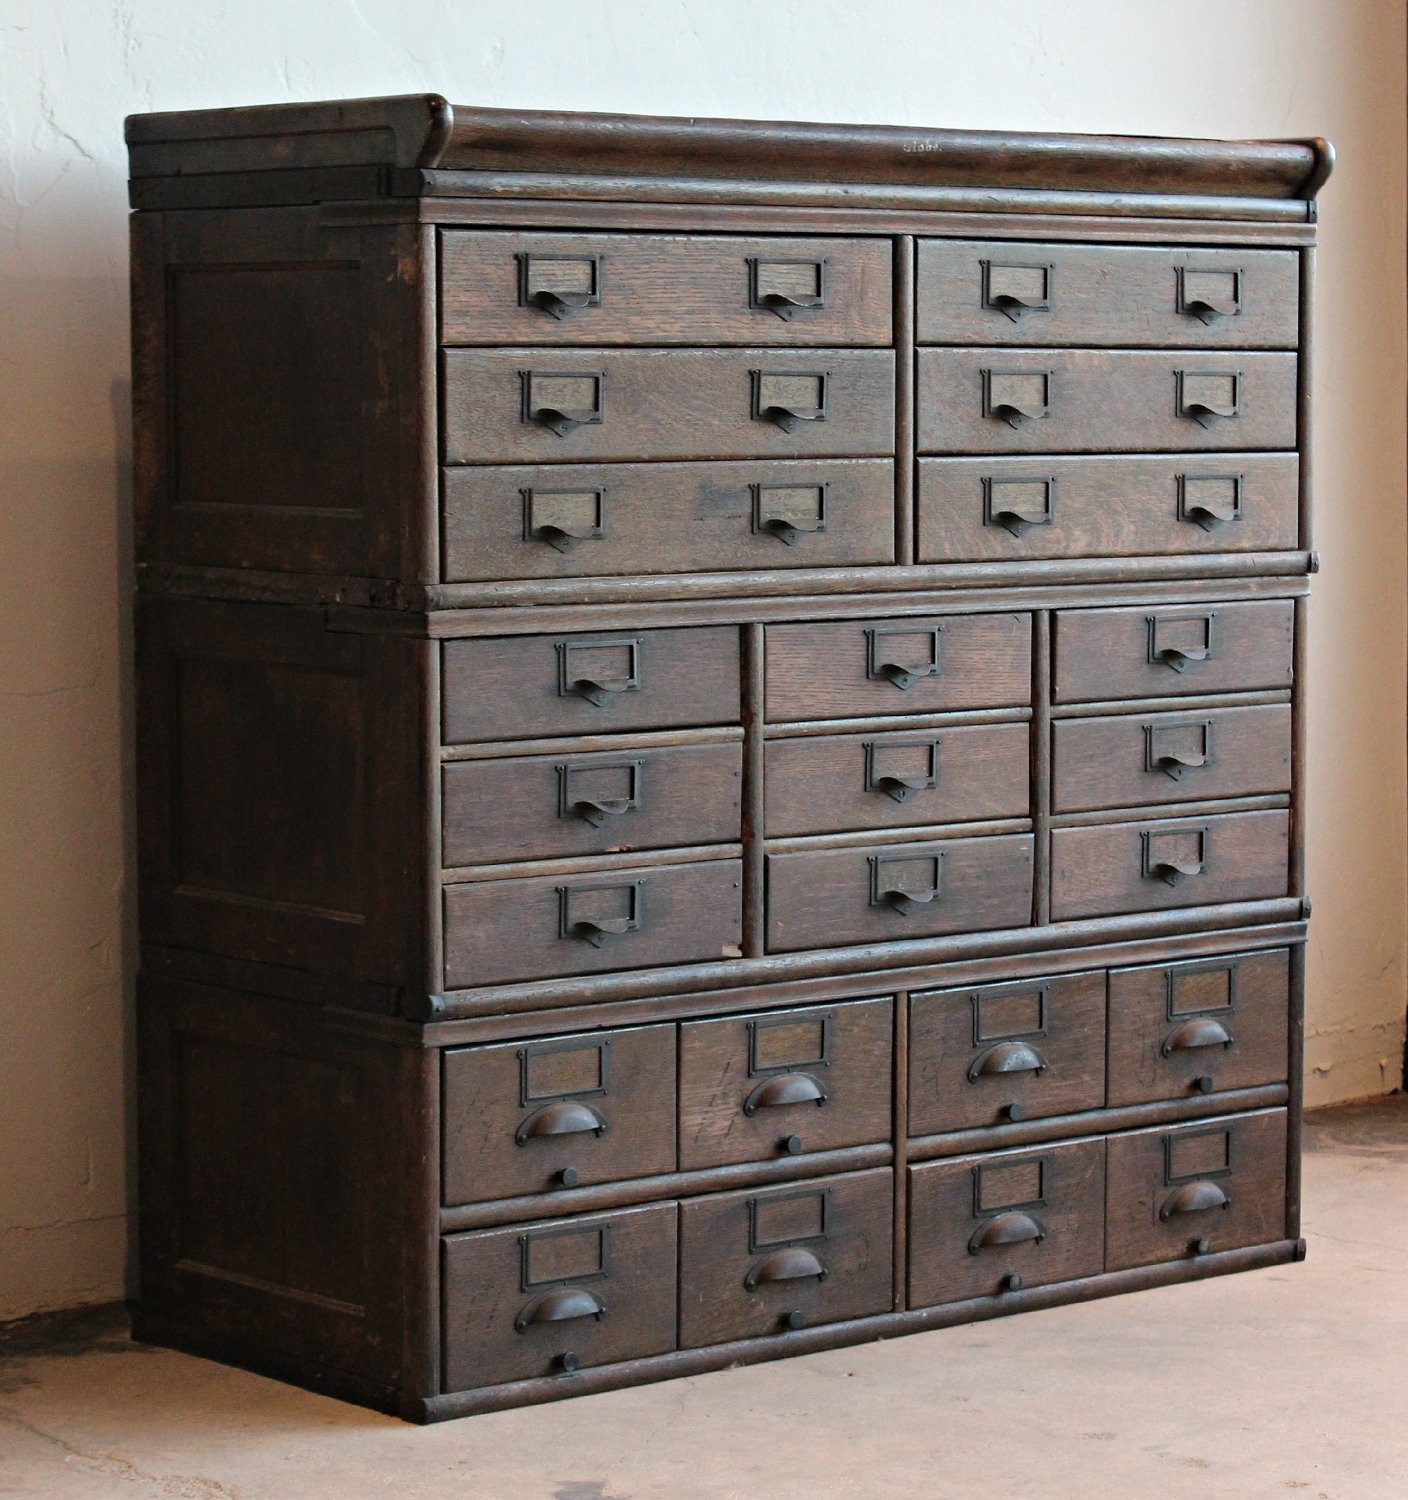 Storage Cabinets With Drawers